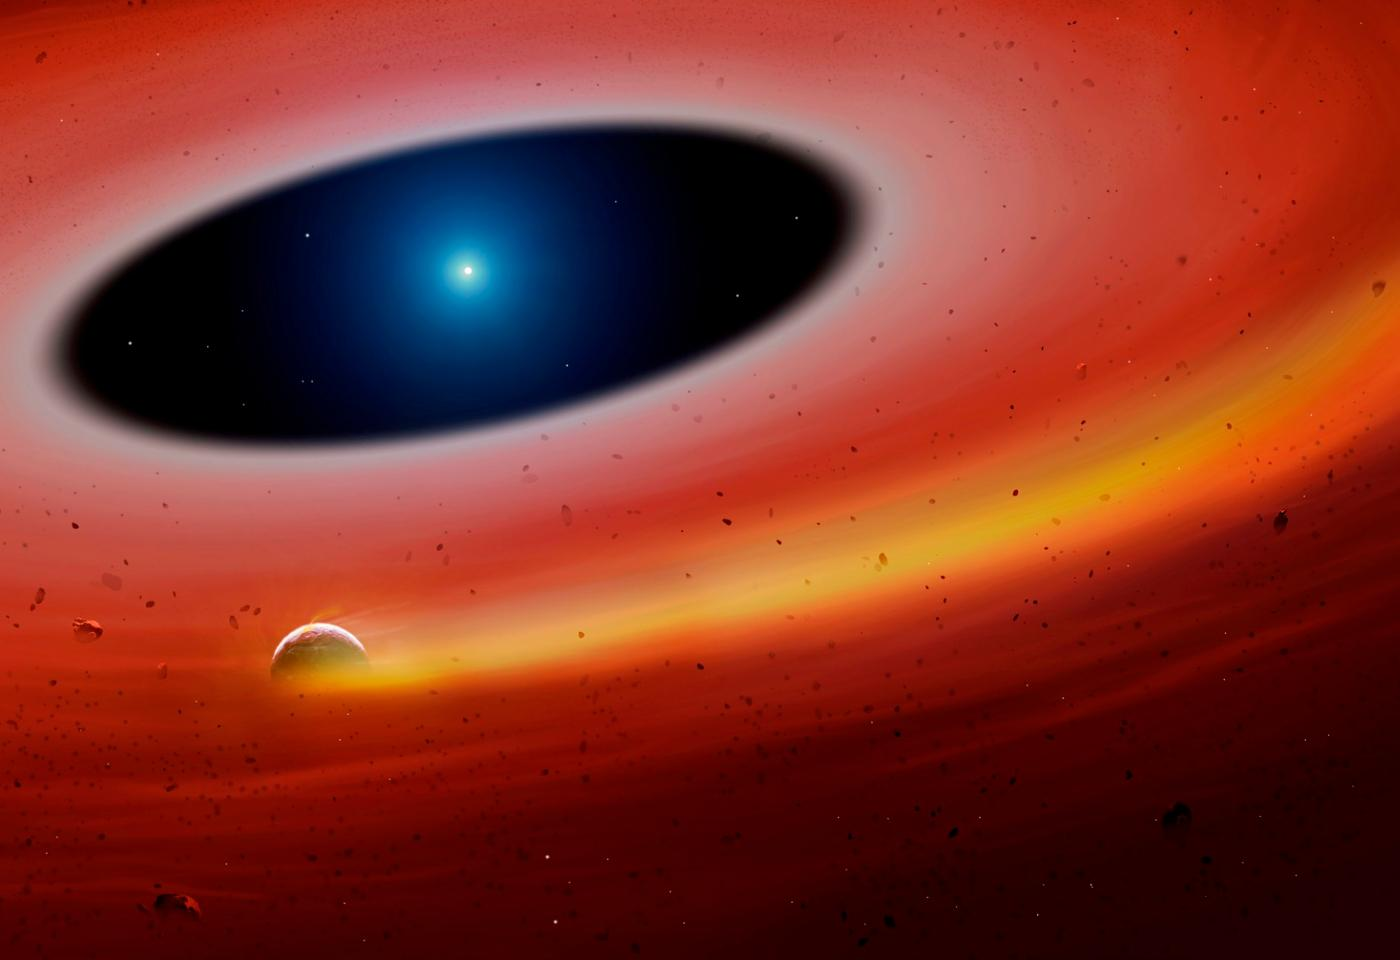 Artist's impression of a planetary fragment orbiting a white dwarf